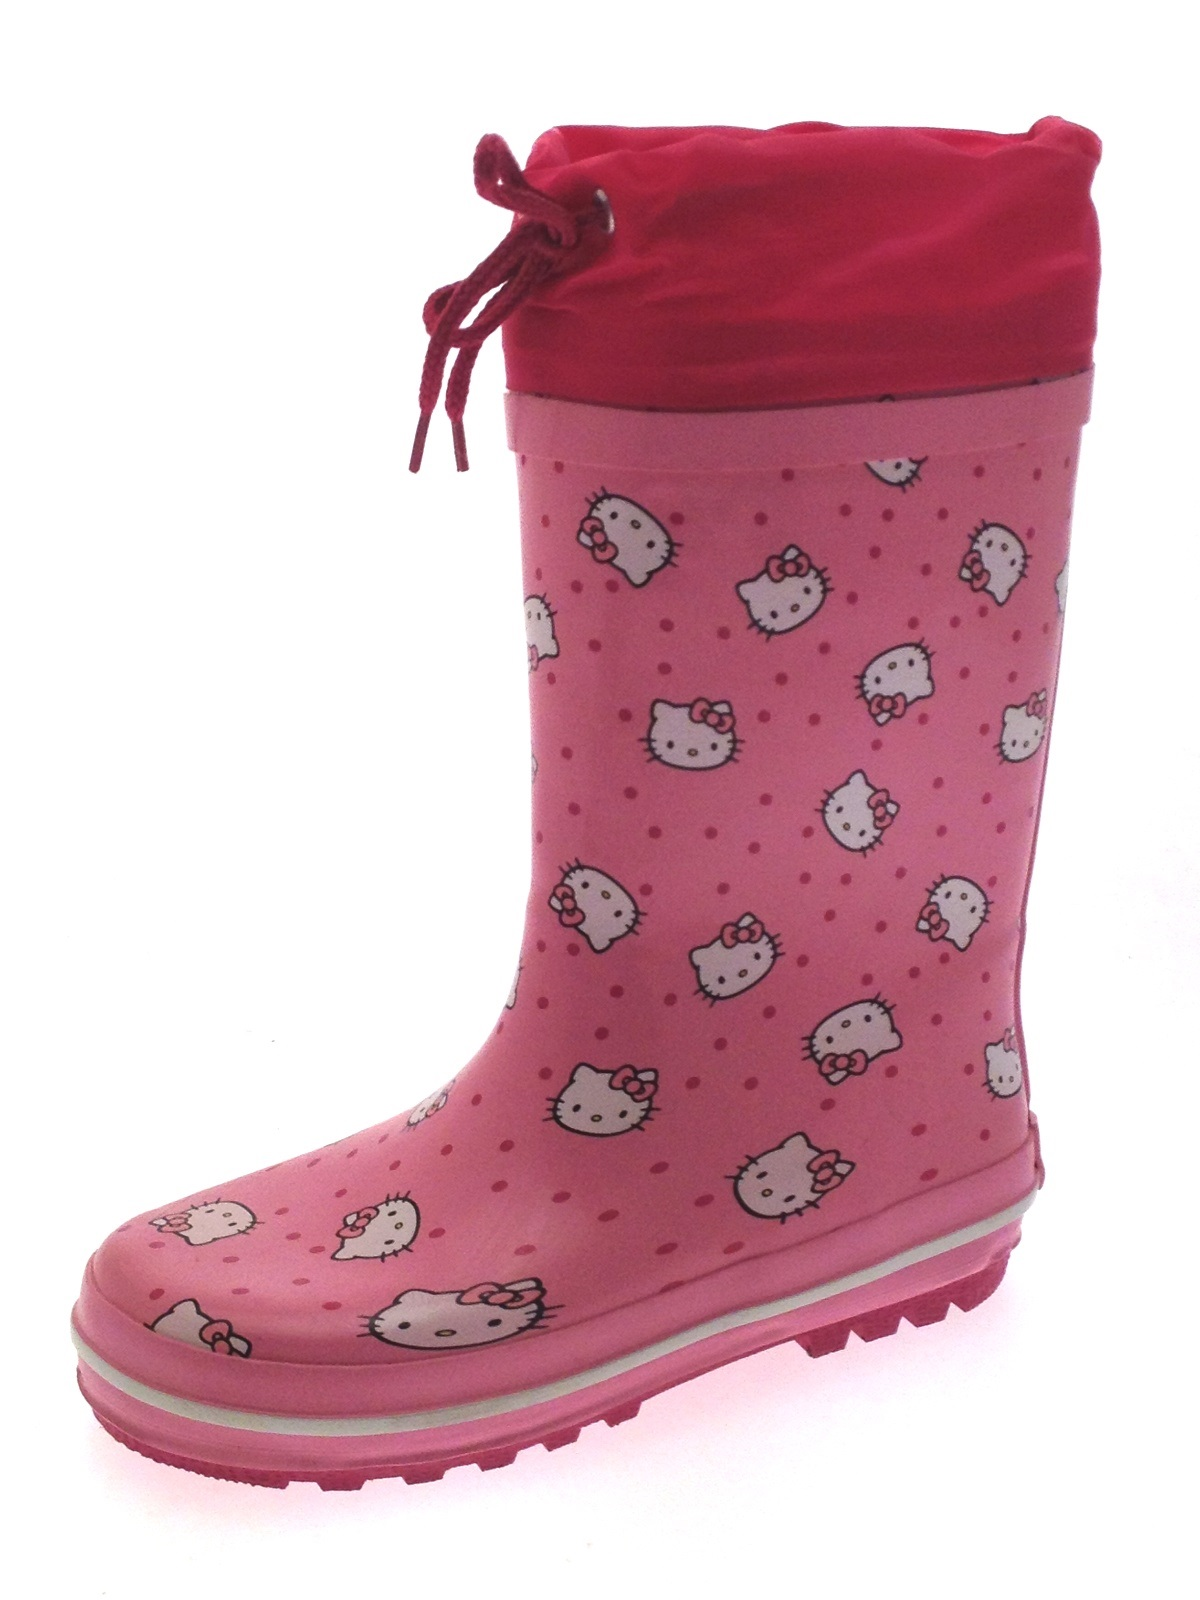 83aed748b8b2 Girls Hello Kitty Tie Top Rubber Snow Boots Wellies Wellingtons Size UK 10  - 13